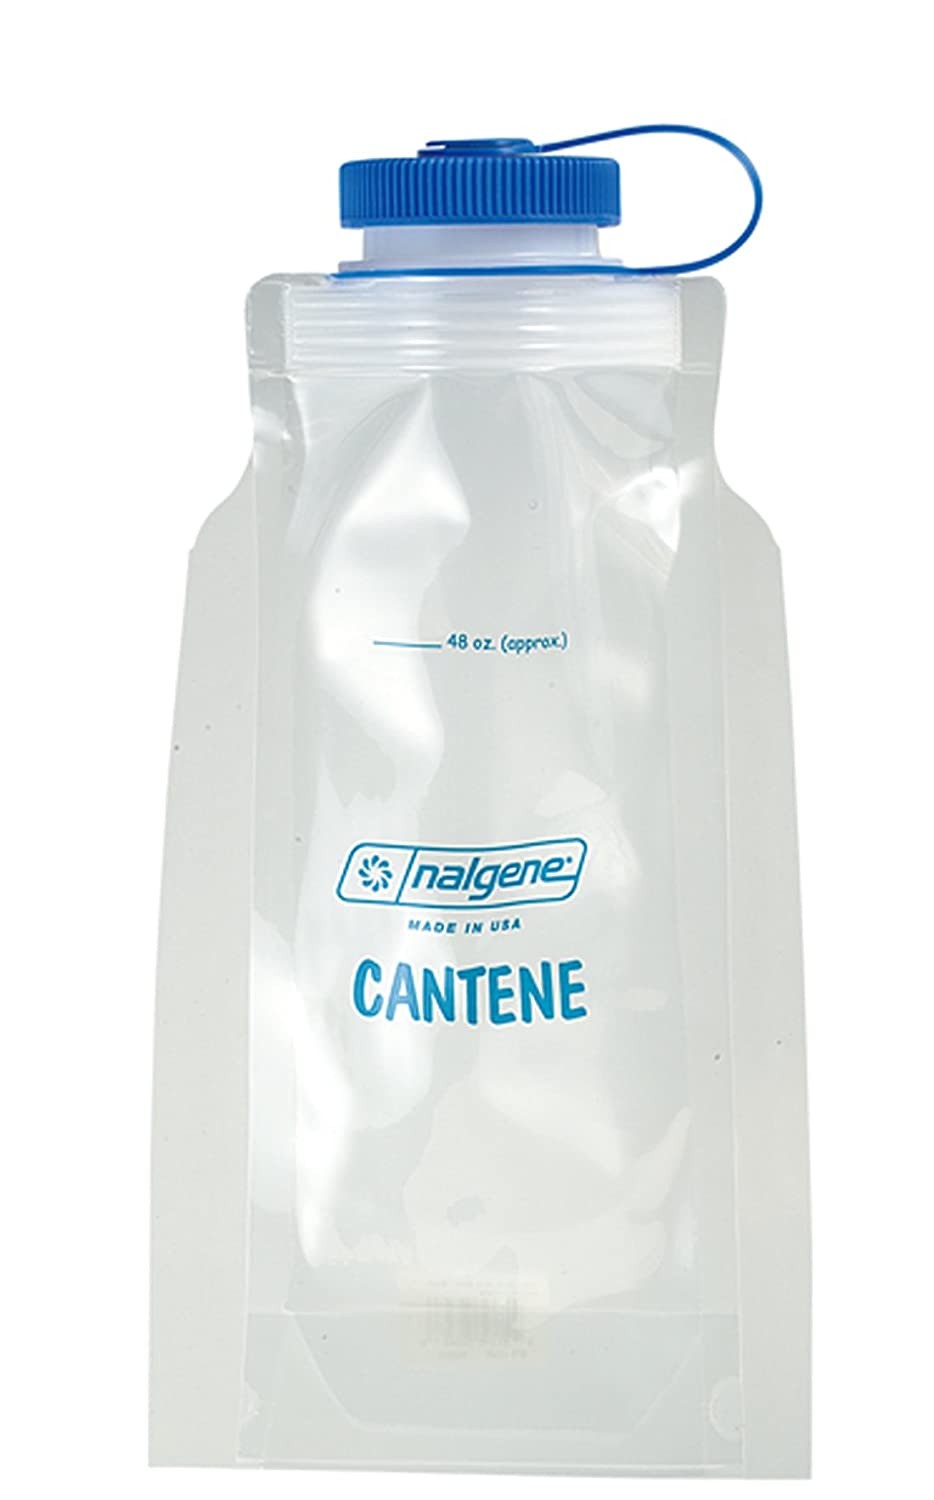 Nalgene PE Drinking Bottle, Folding Bottle, 1.5l, Transparent, 1412650 RELGV|#Relags 340710